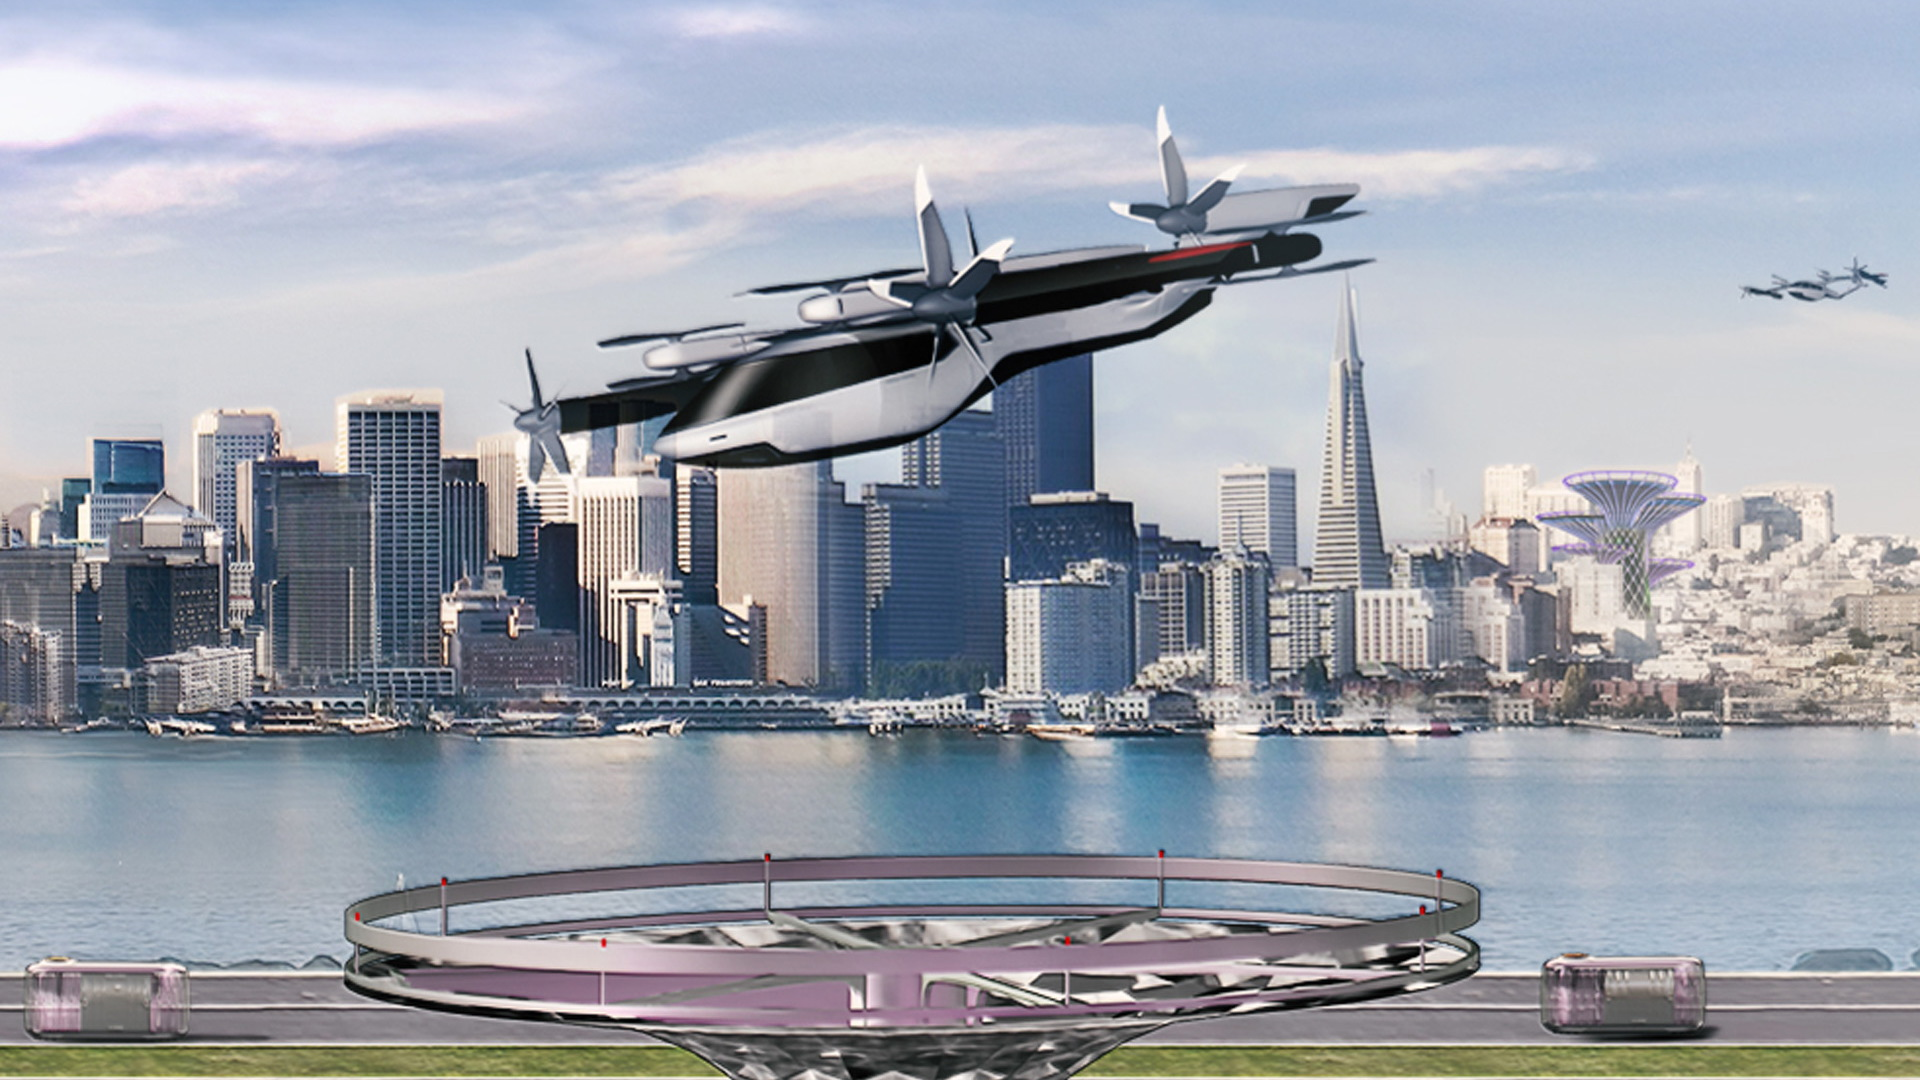 Hyundai Motor Group flying taxi concept